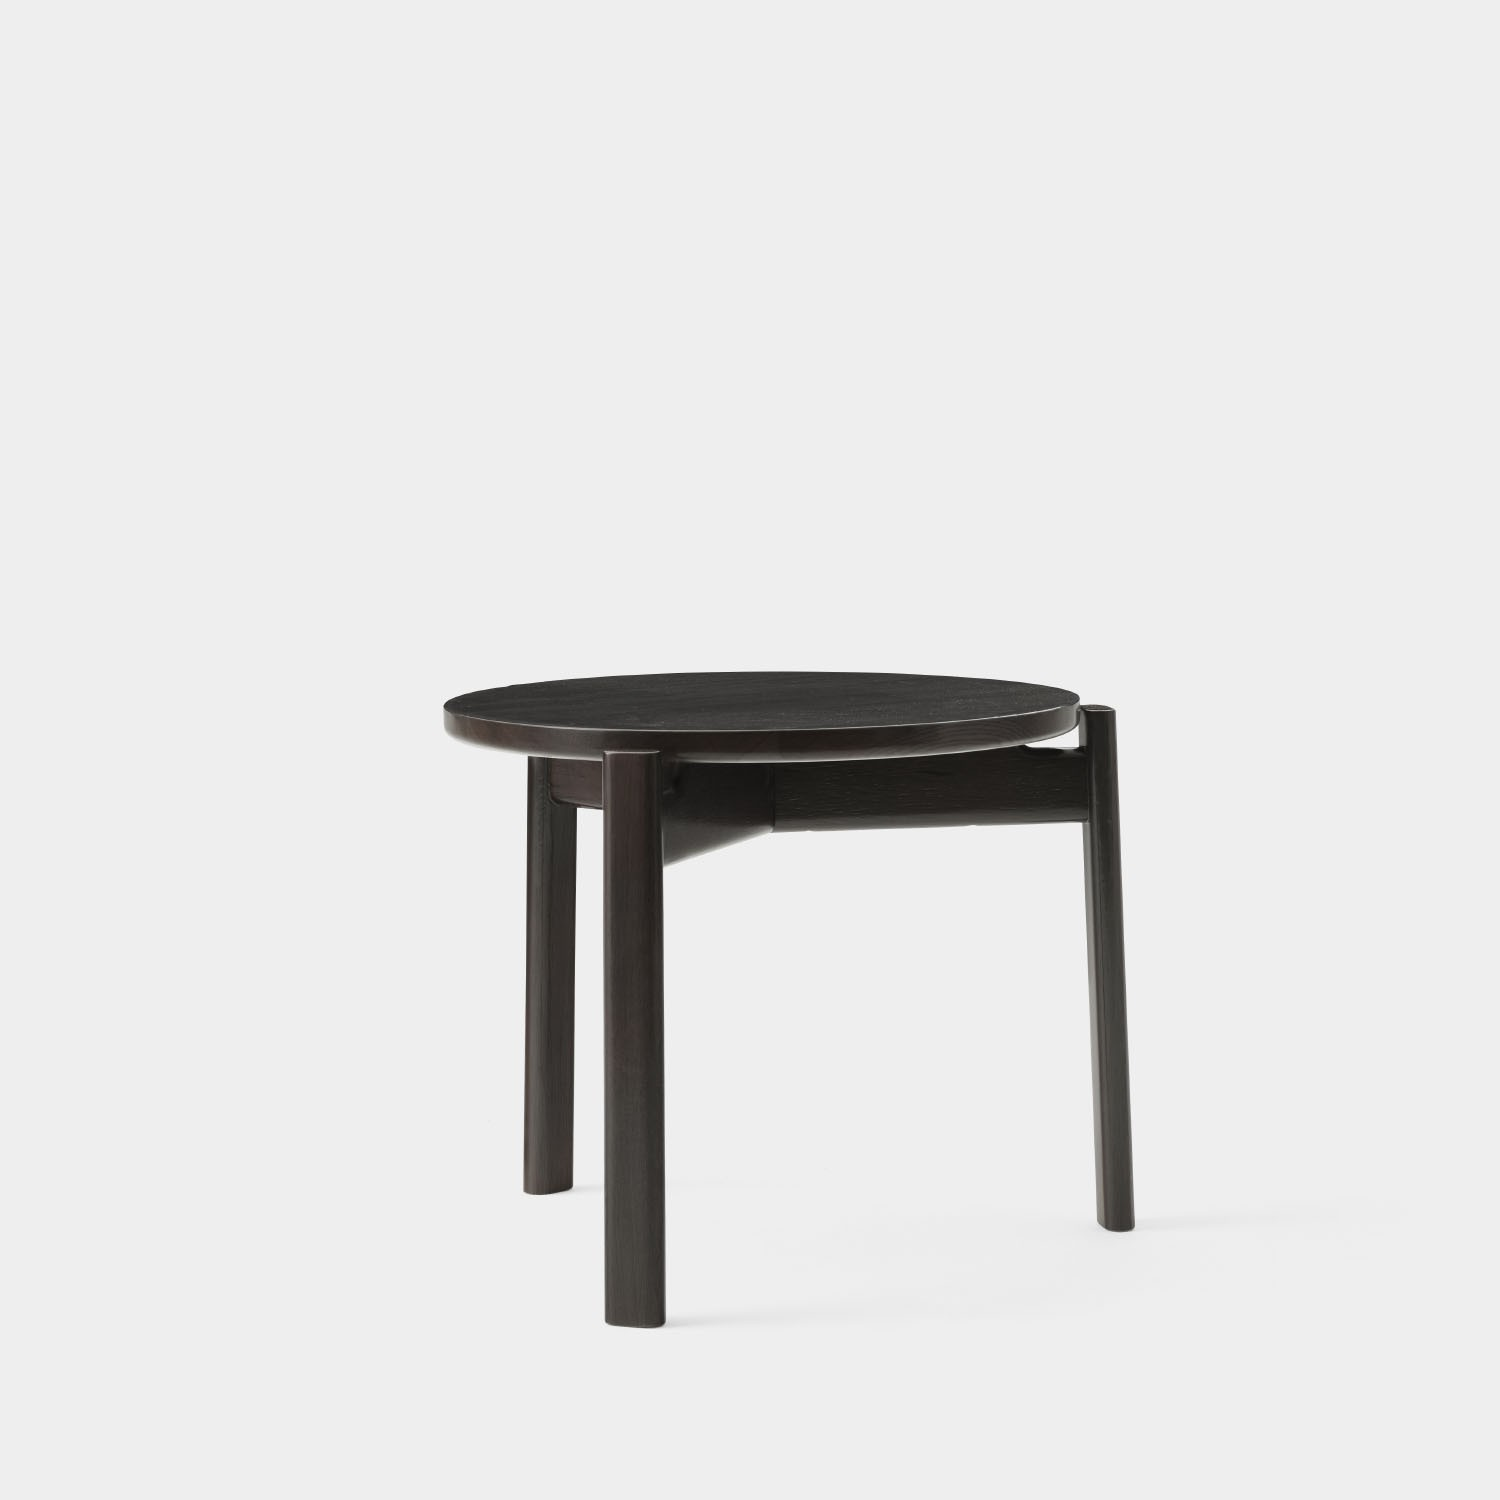 Passage Lounge Table, Dark Lacquered Oak